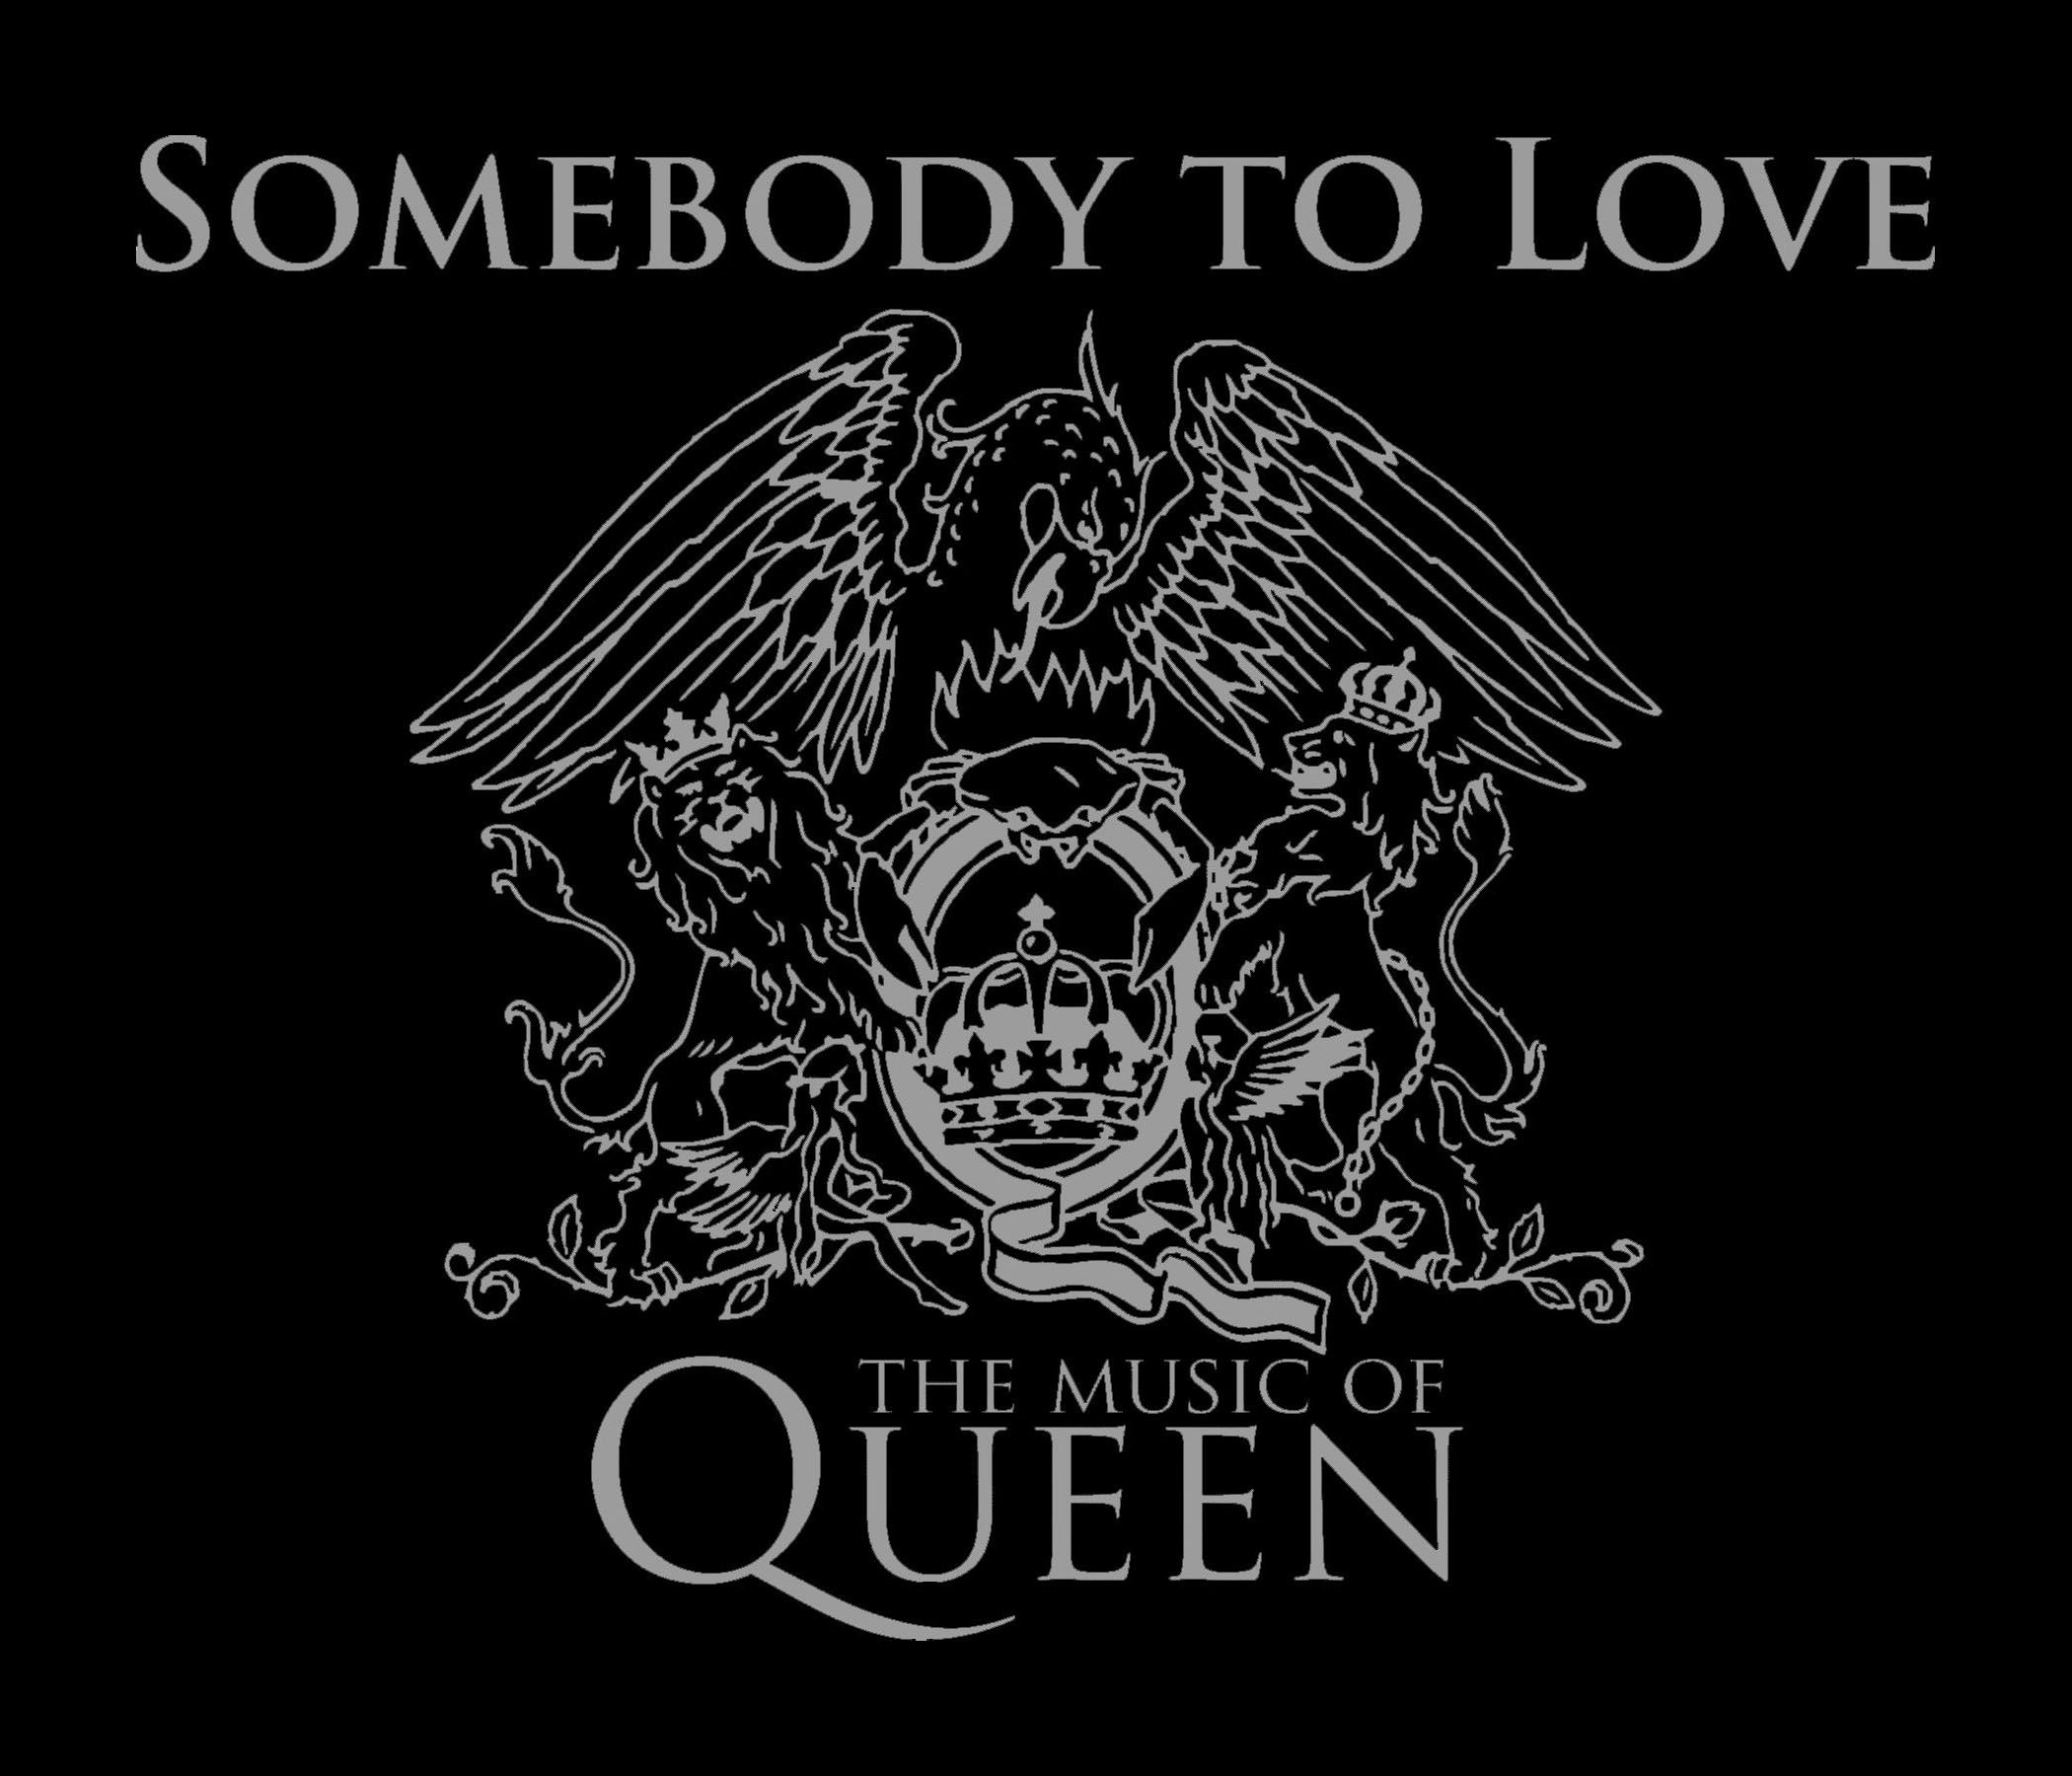 queen band logo - Google Search | ROCK & ROLL BRAND ...